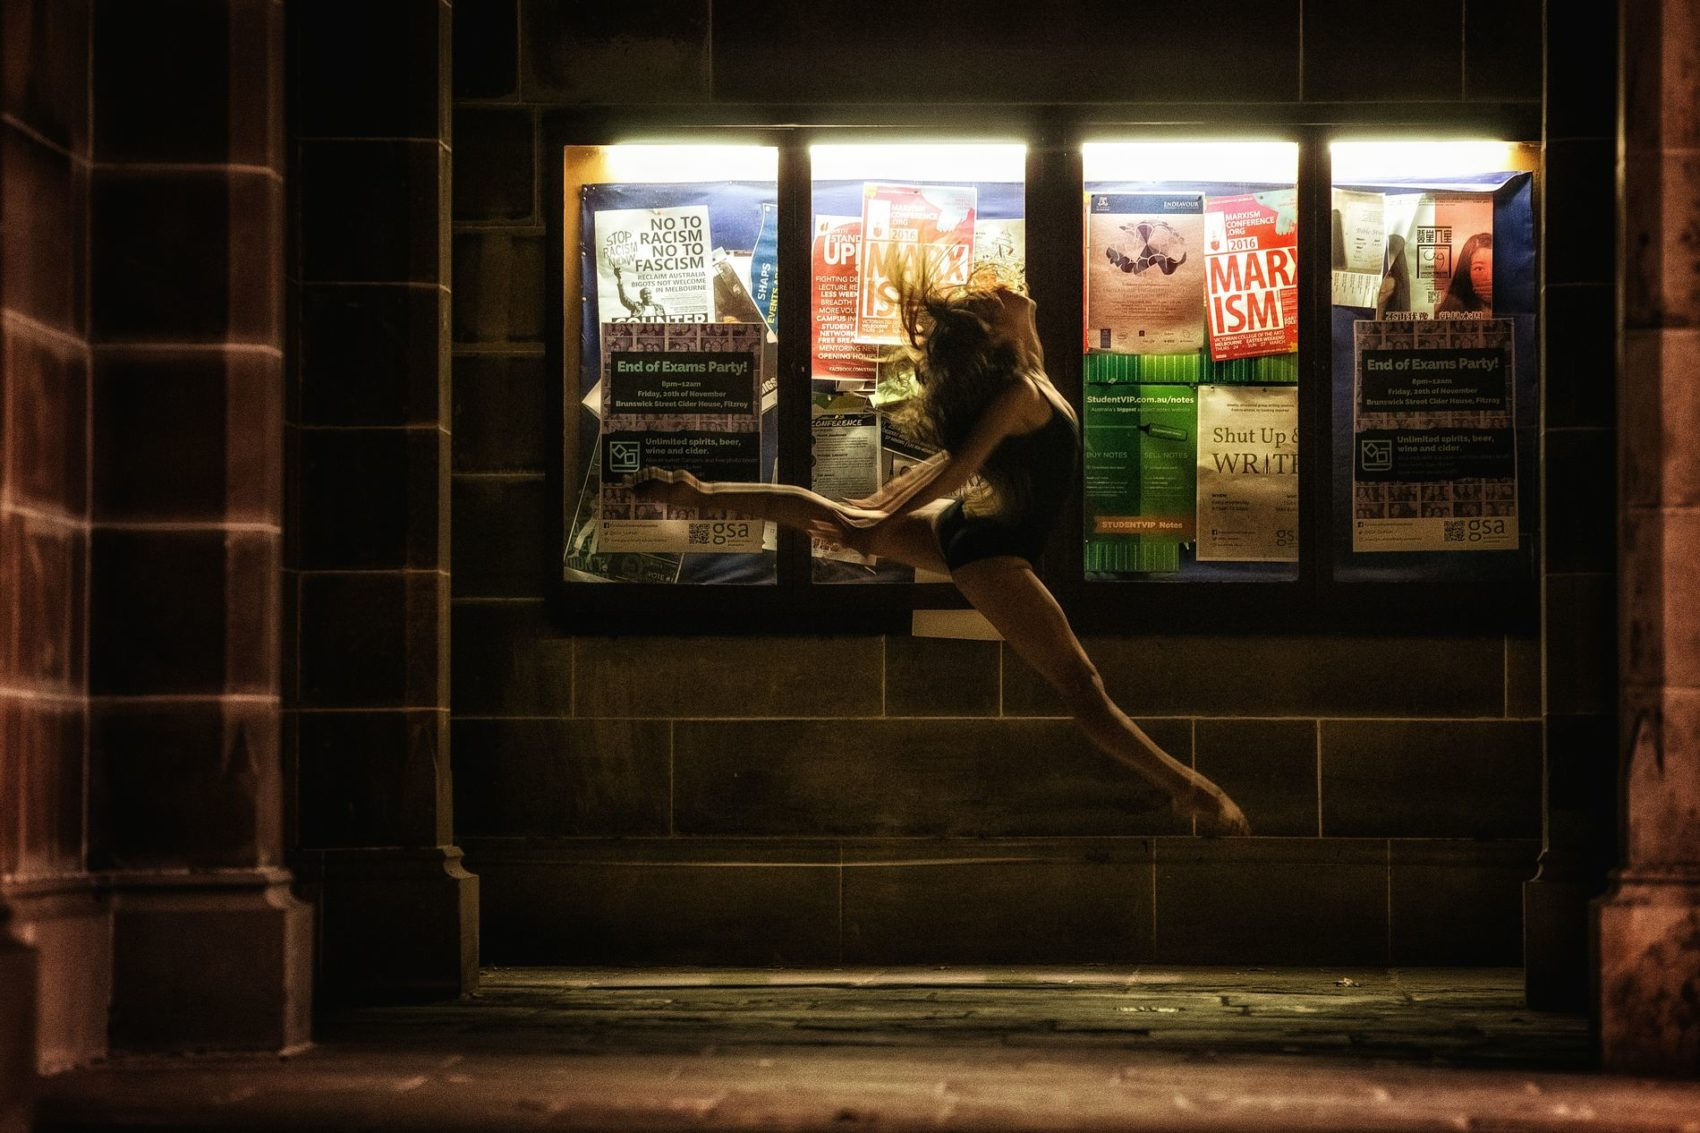 Streets Dancers Photographs - Higher Education featuring Catherine Donato